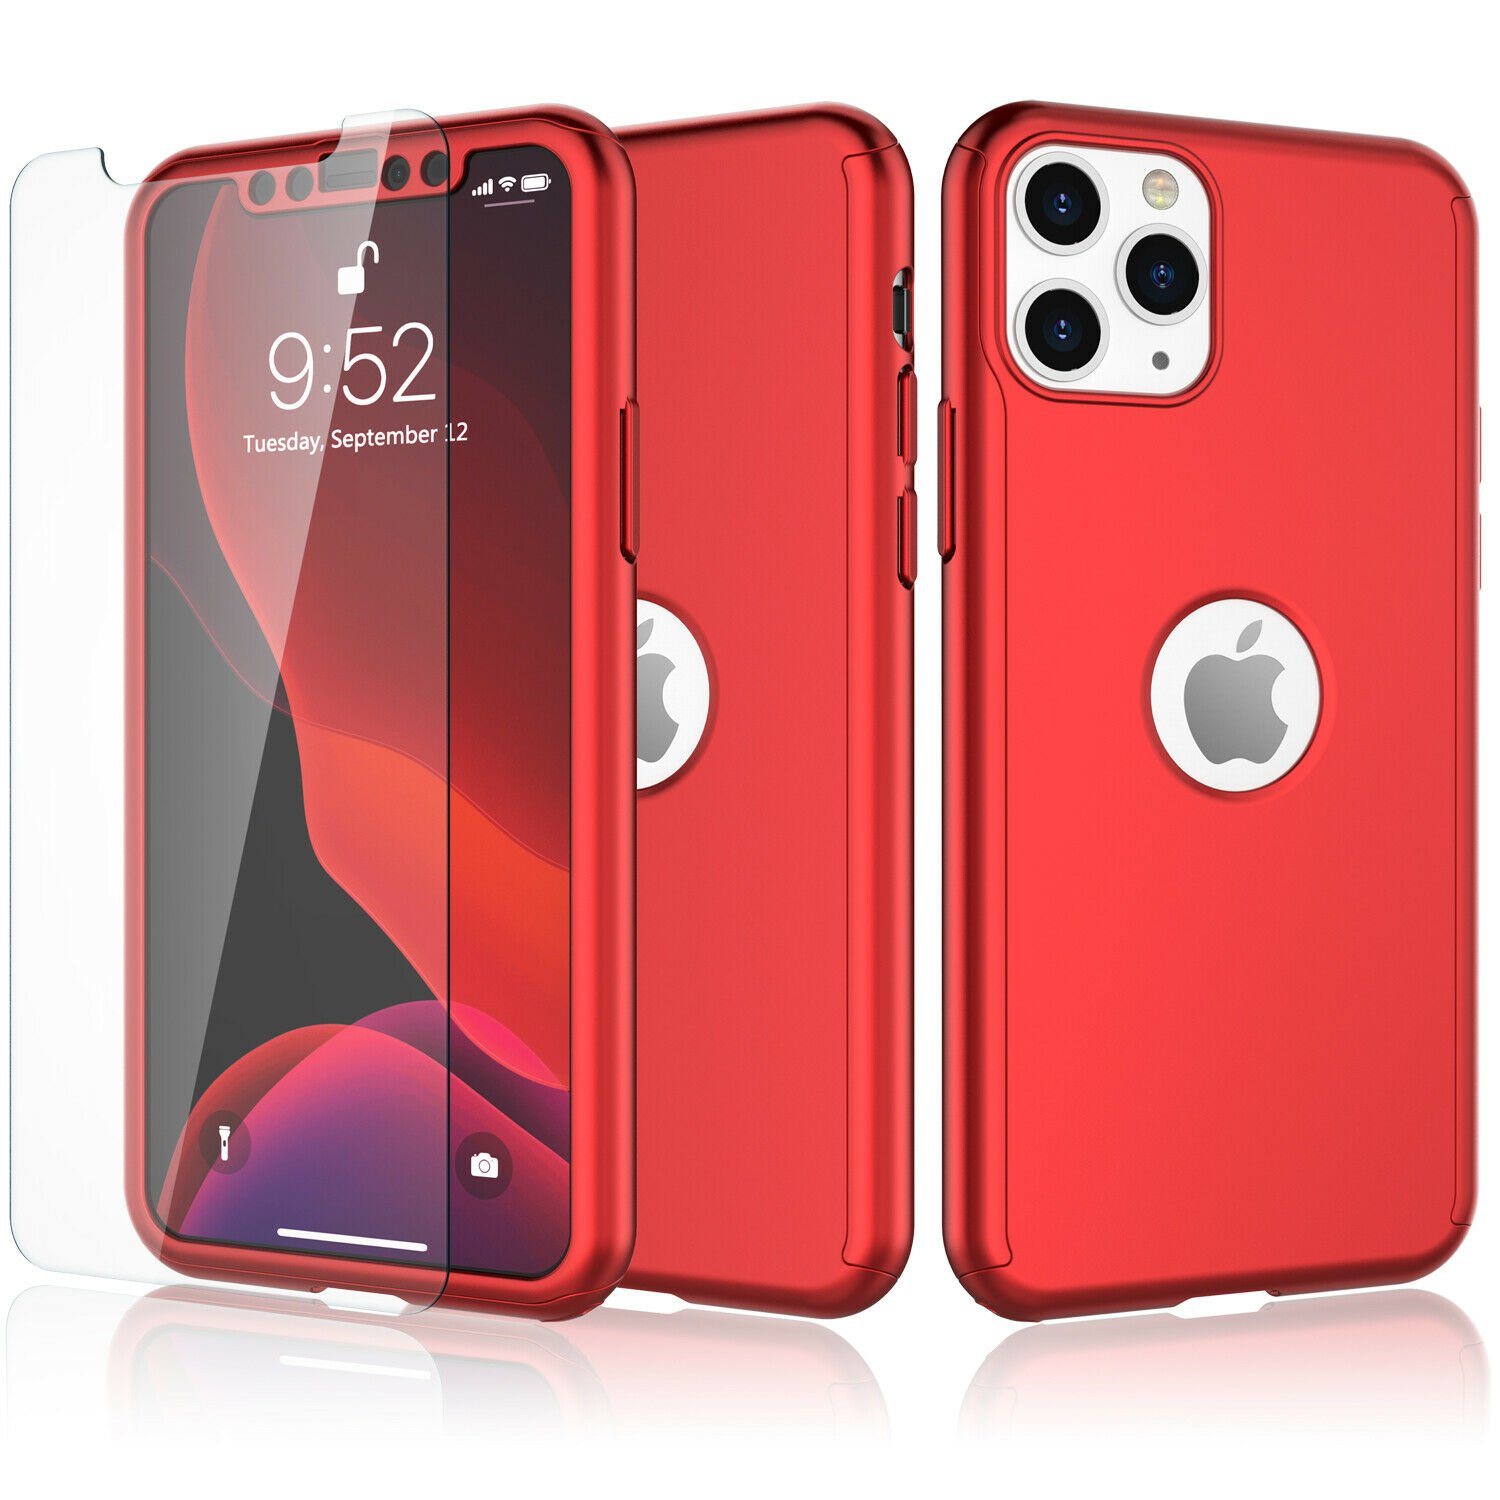 UNA SELLER For iPhone 11 360° Case Cover with Tempered Glass Screen Protector #Red